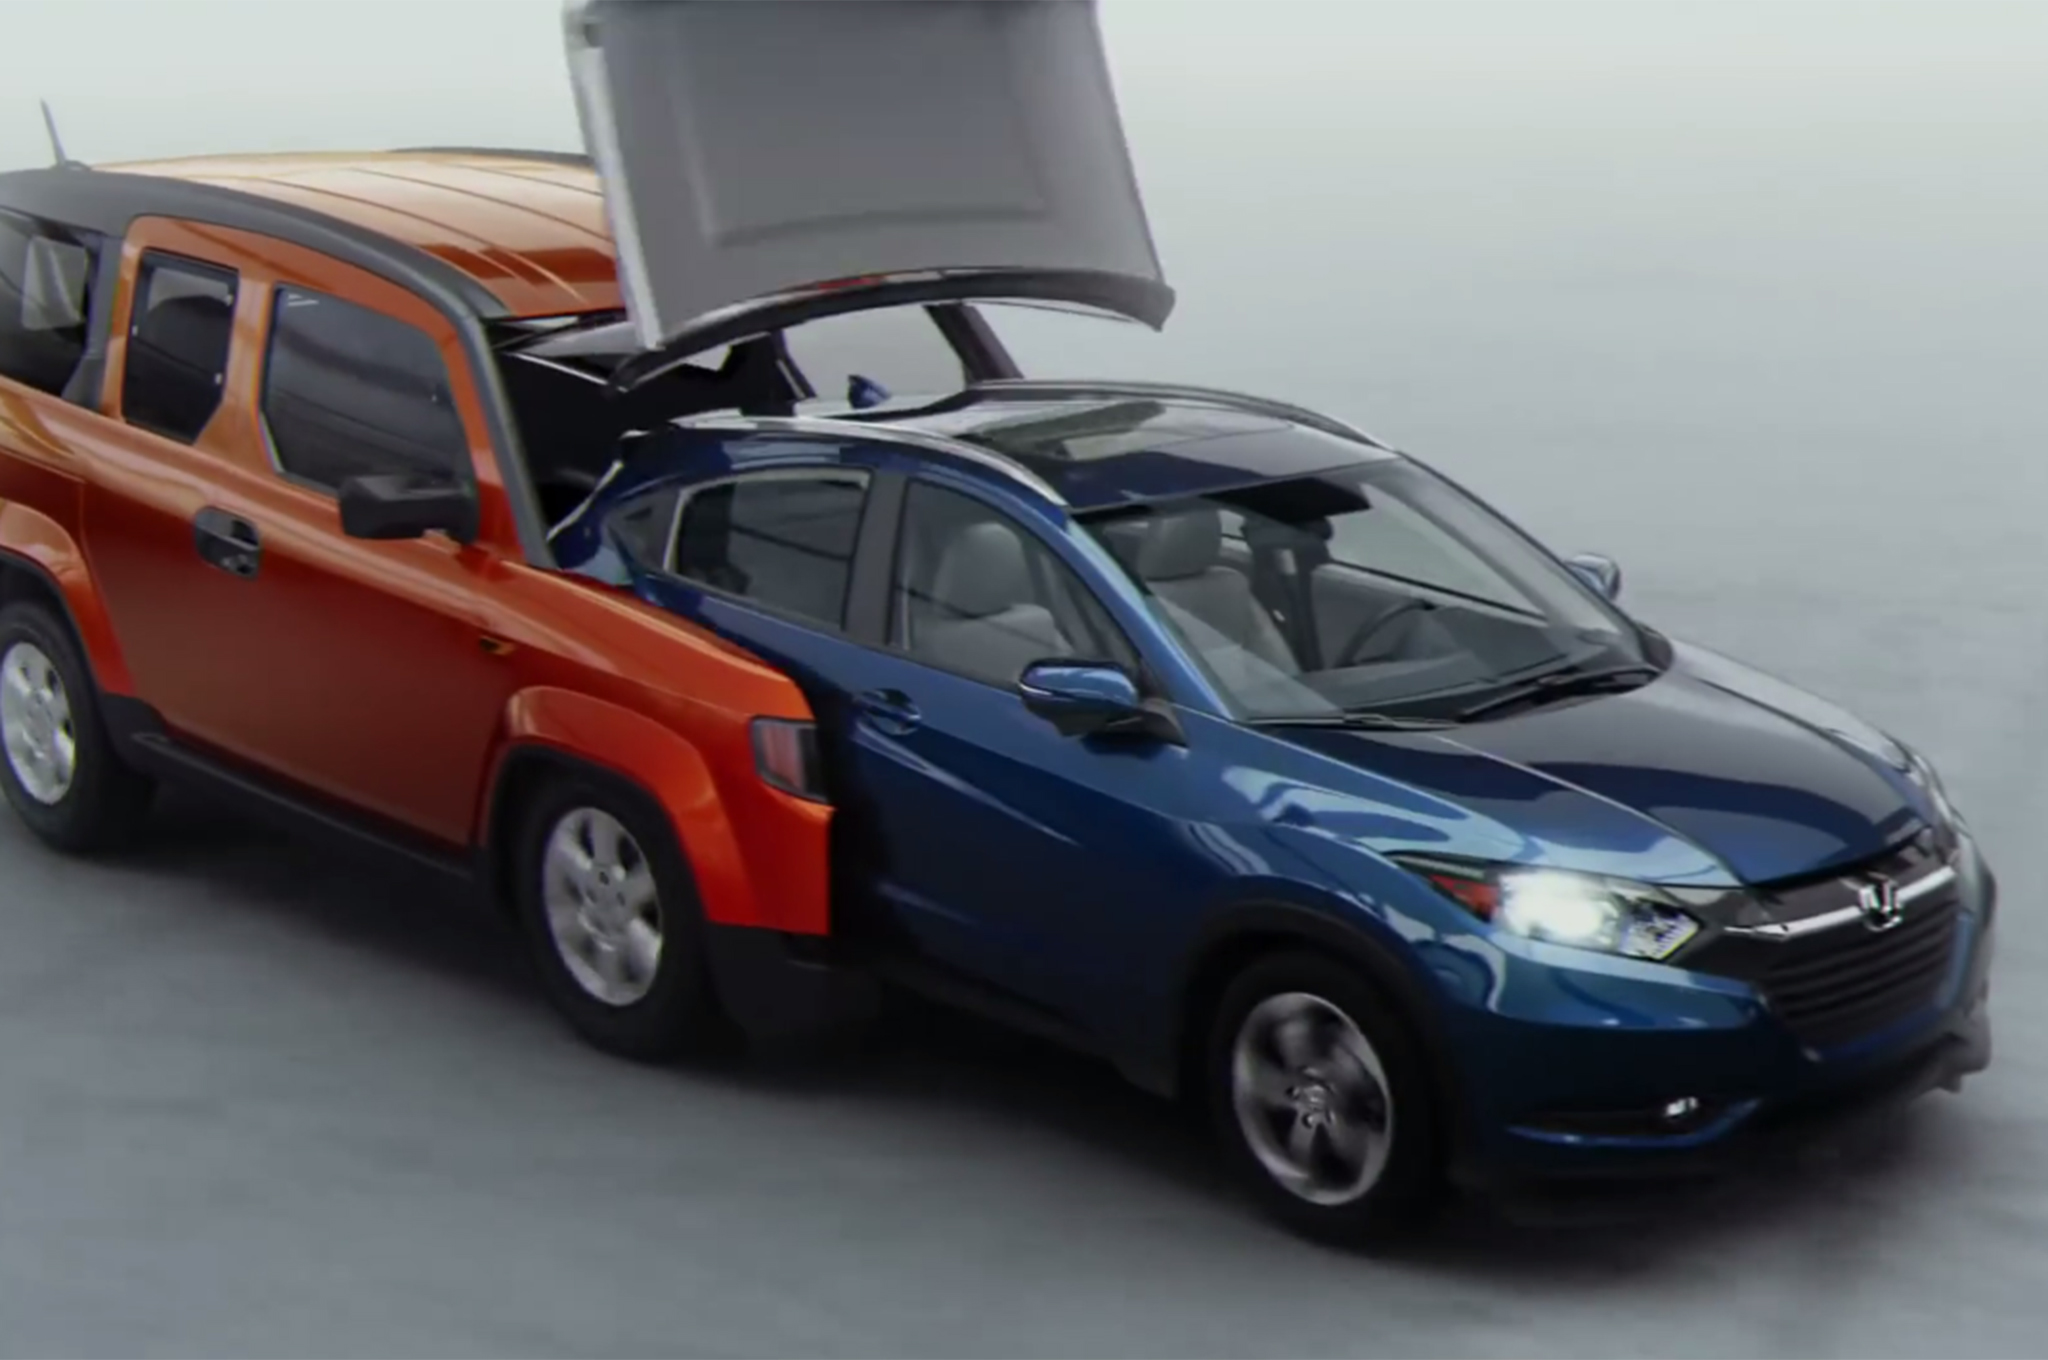 2016 Honda Element >> Watch 2016 Hr V Ad Features 7 Hondas From The Past